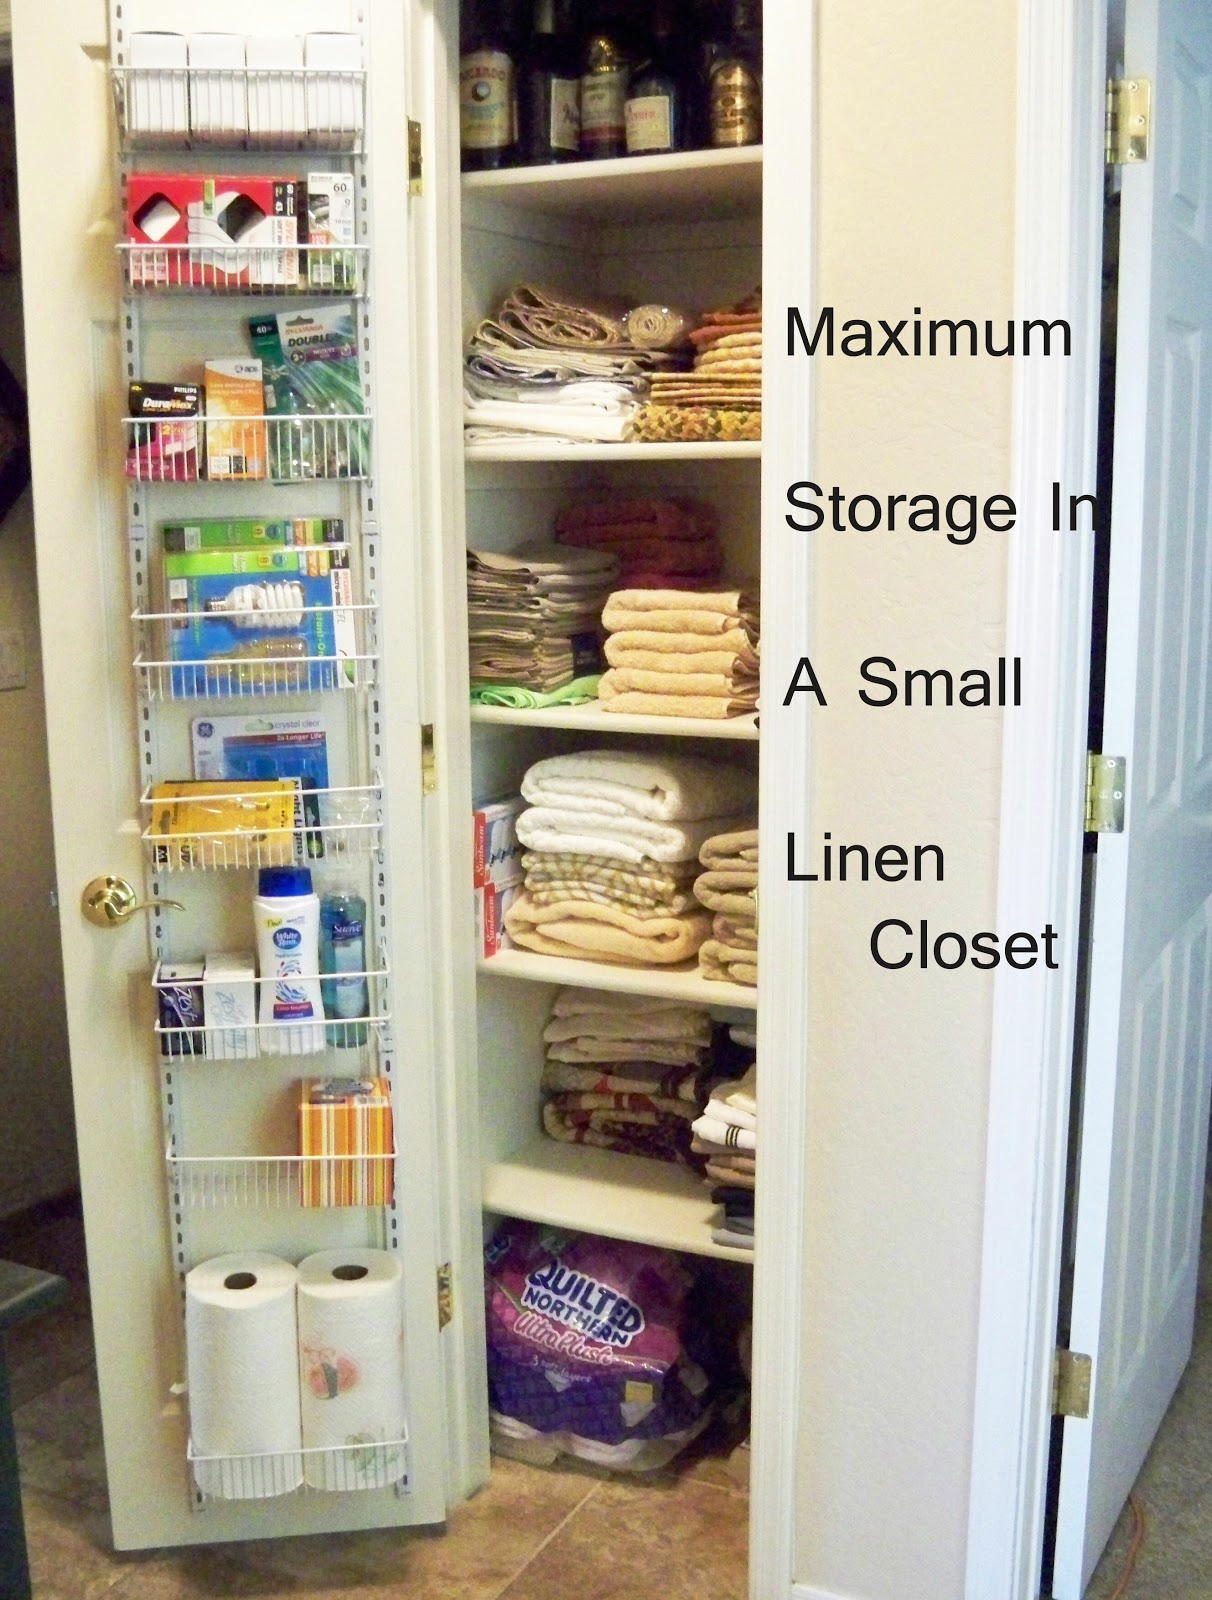 Linen Closet Organizer Systems A Stroll Thru Life Maximum Storage In A Small Linen Closet